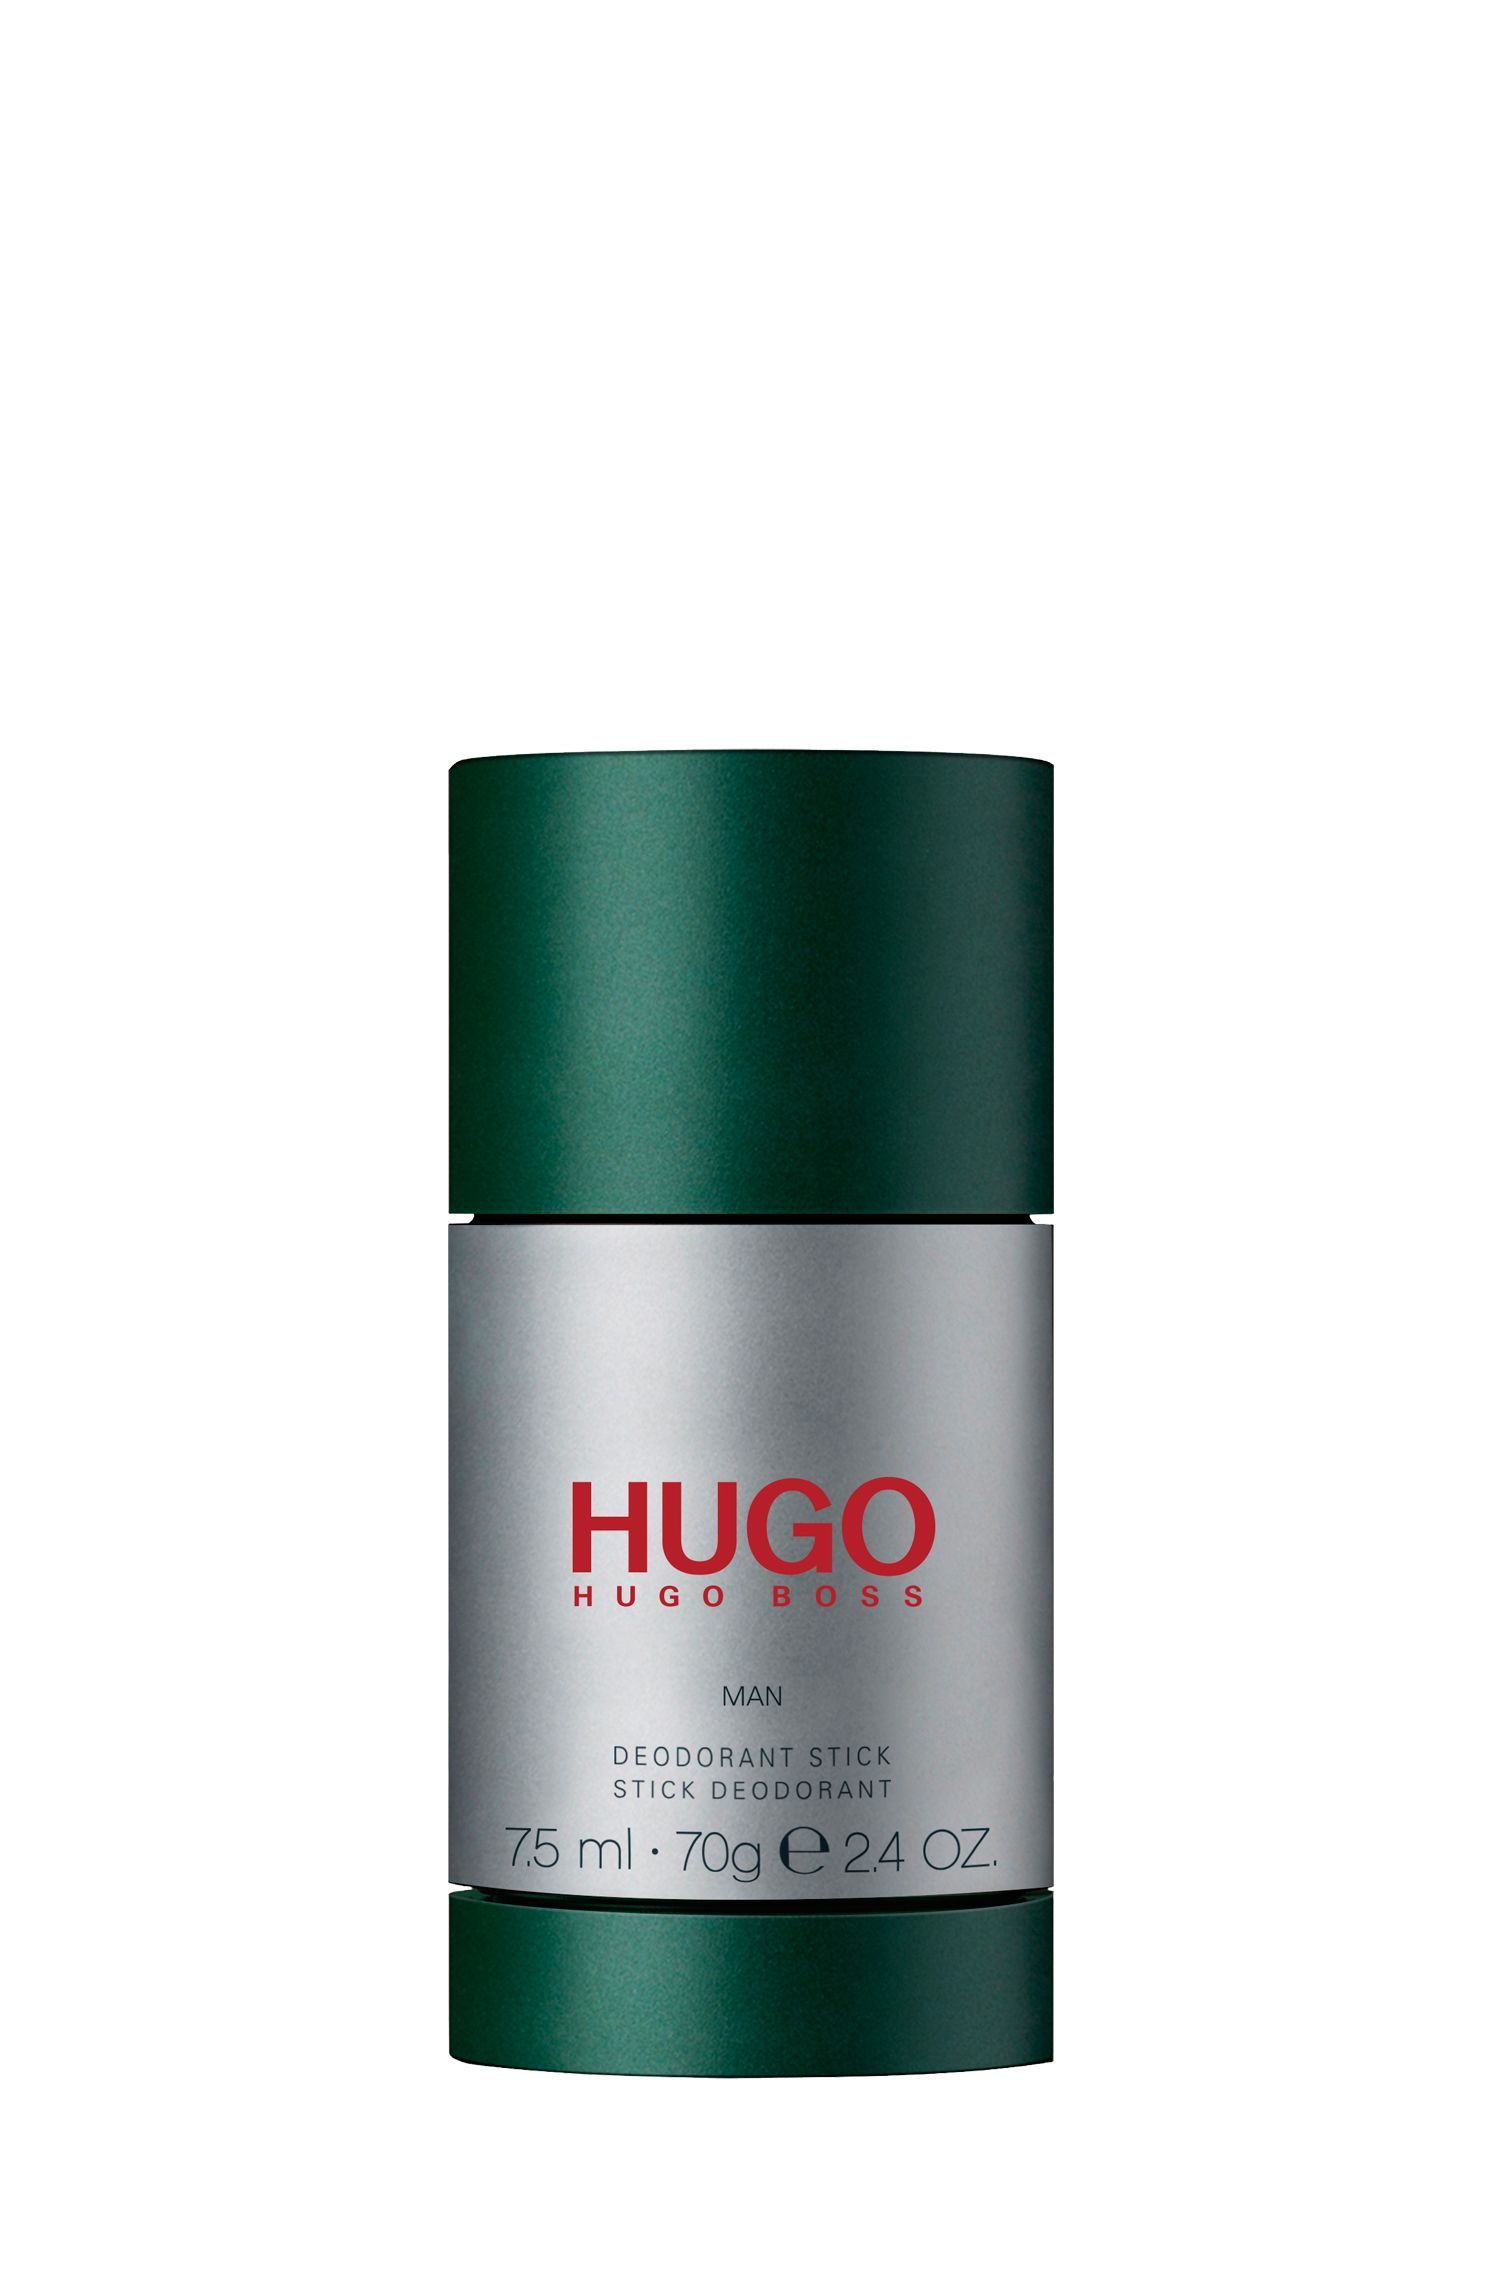 HUGO Man Deostick 75 ml , Assorted-Pre-Pack